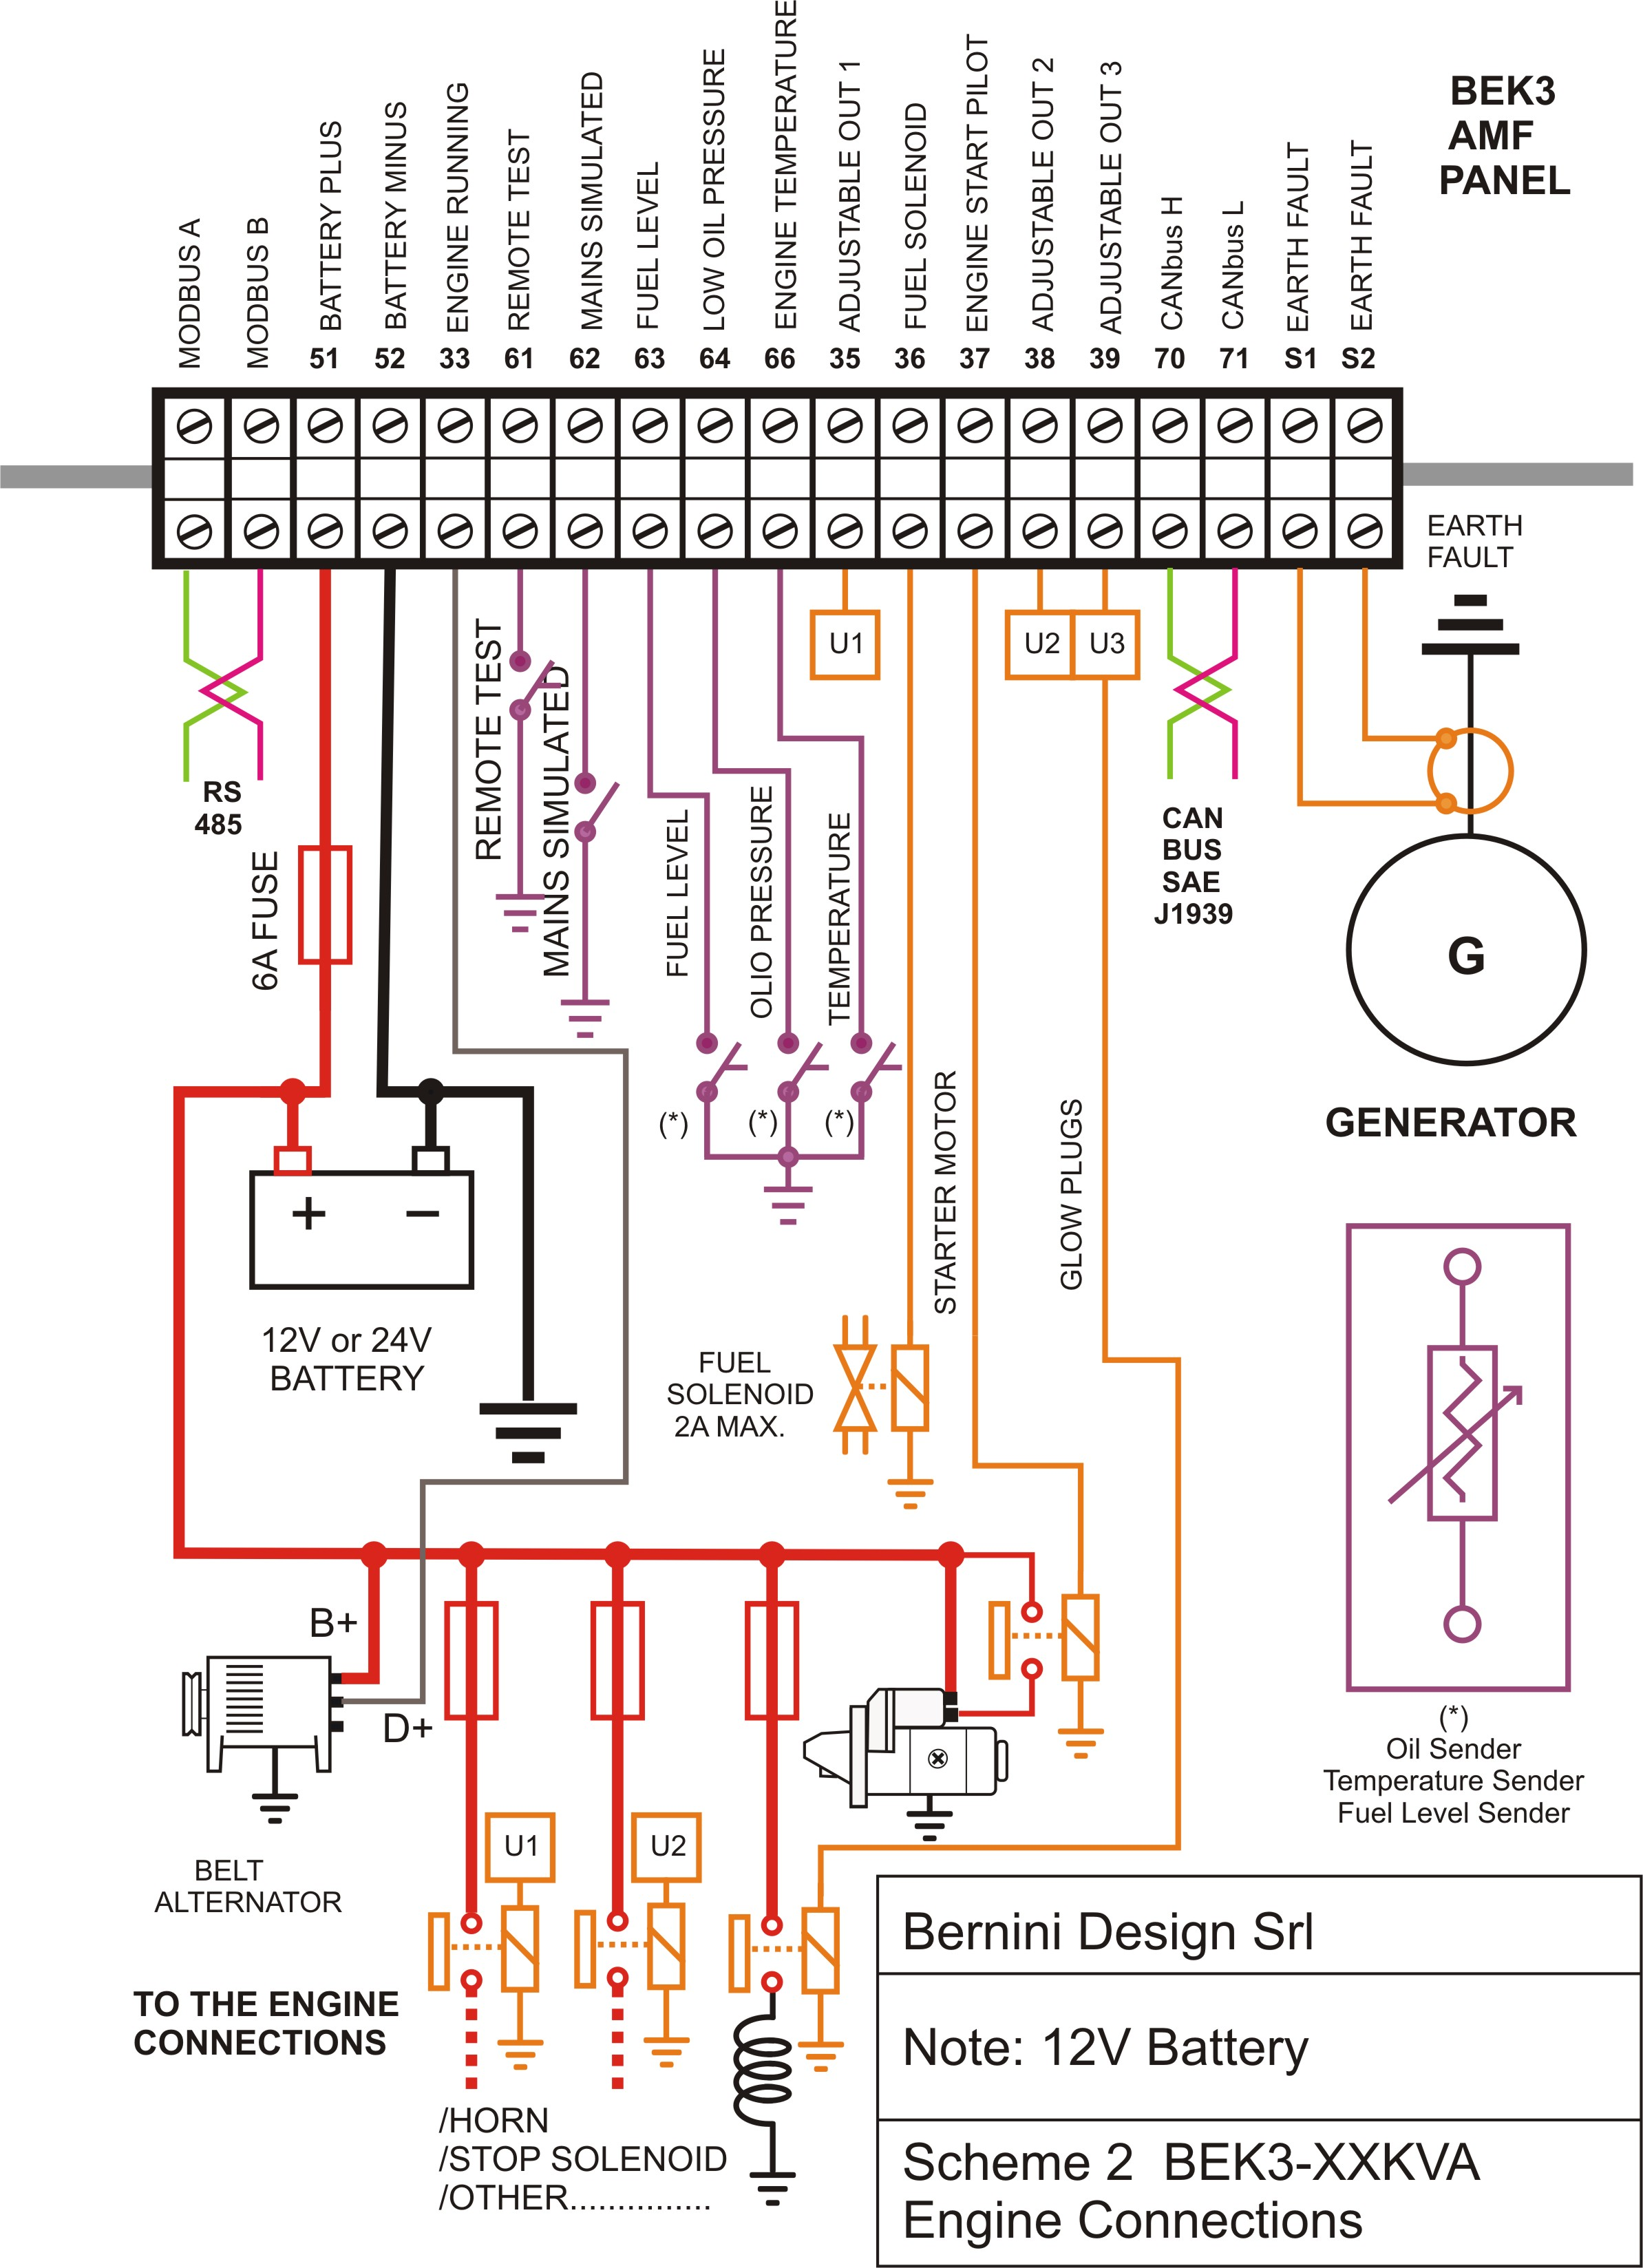 Circuit Panel Wiring Diagram: generator control panel wiring diagram,